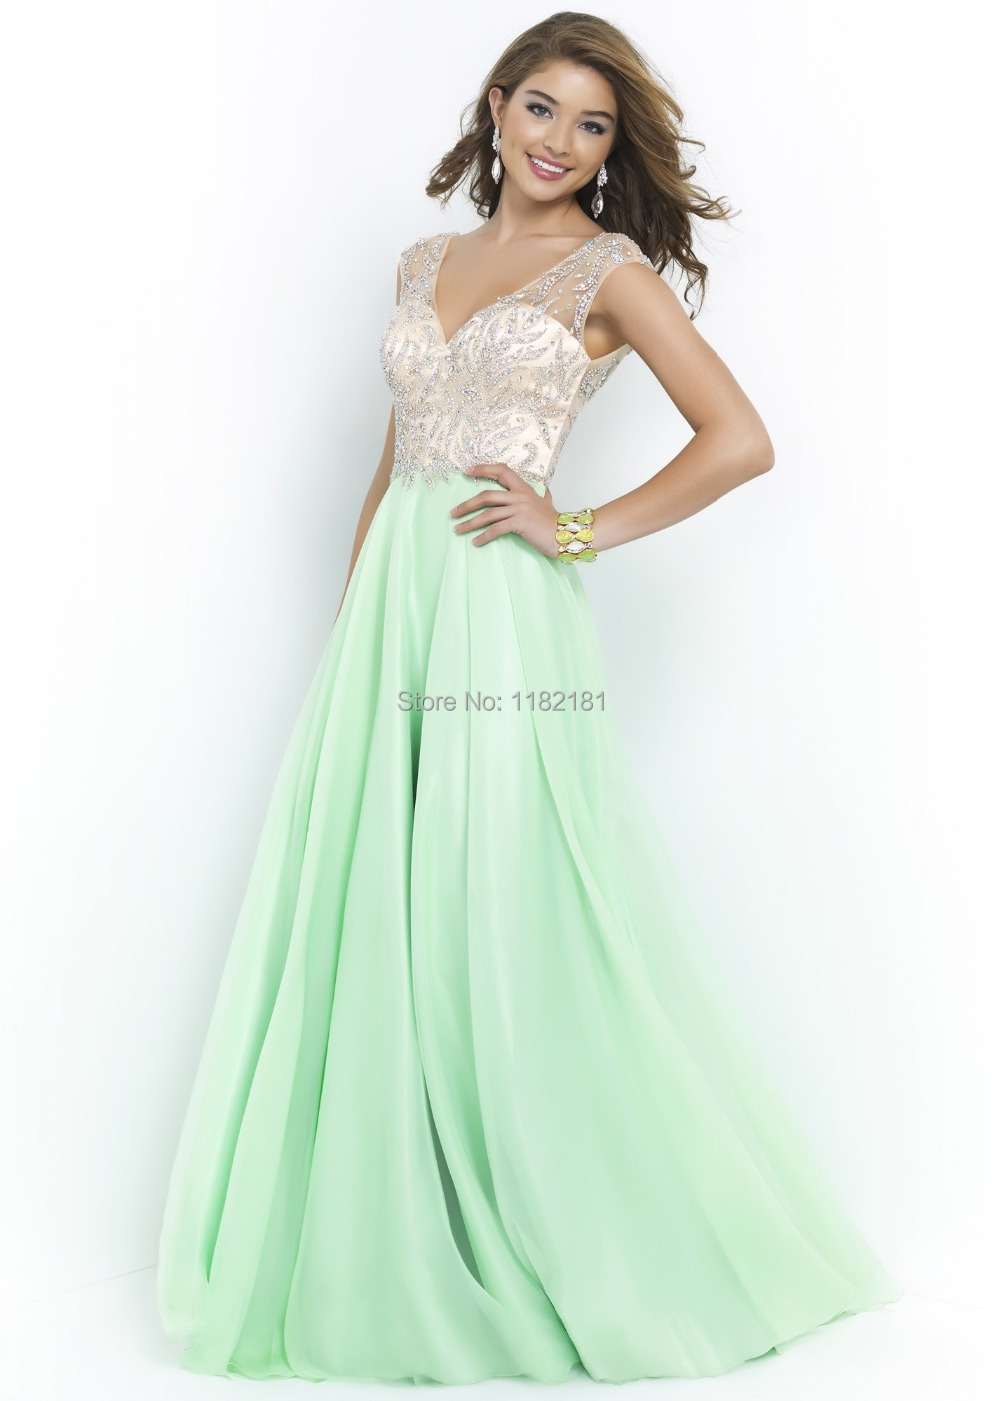 Sequins Beaded V-neck Cap Sleeves Prom Dress Mint Long Evening Gowns Backless 2015 Custom Made